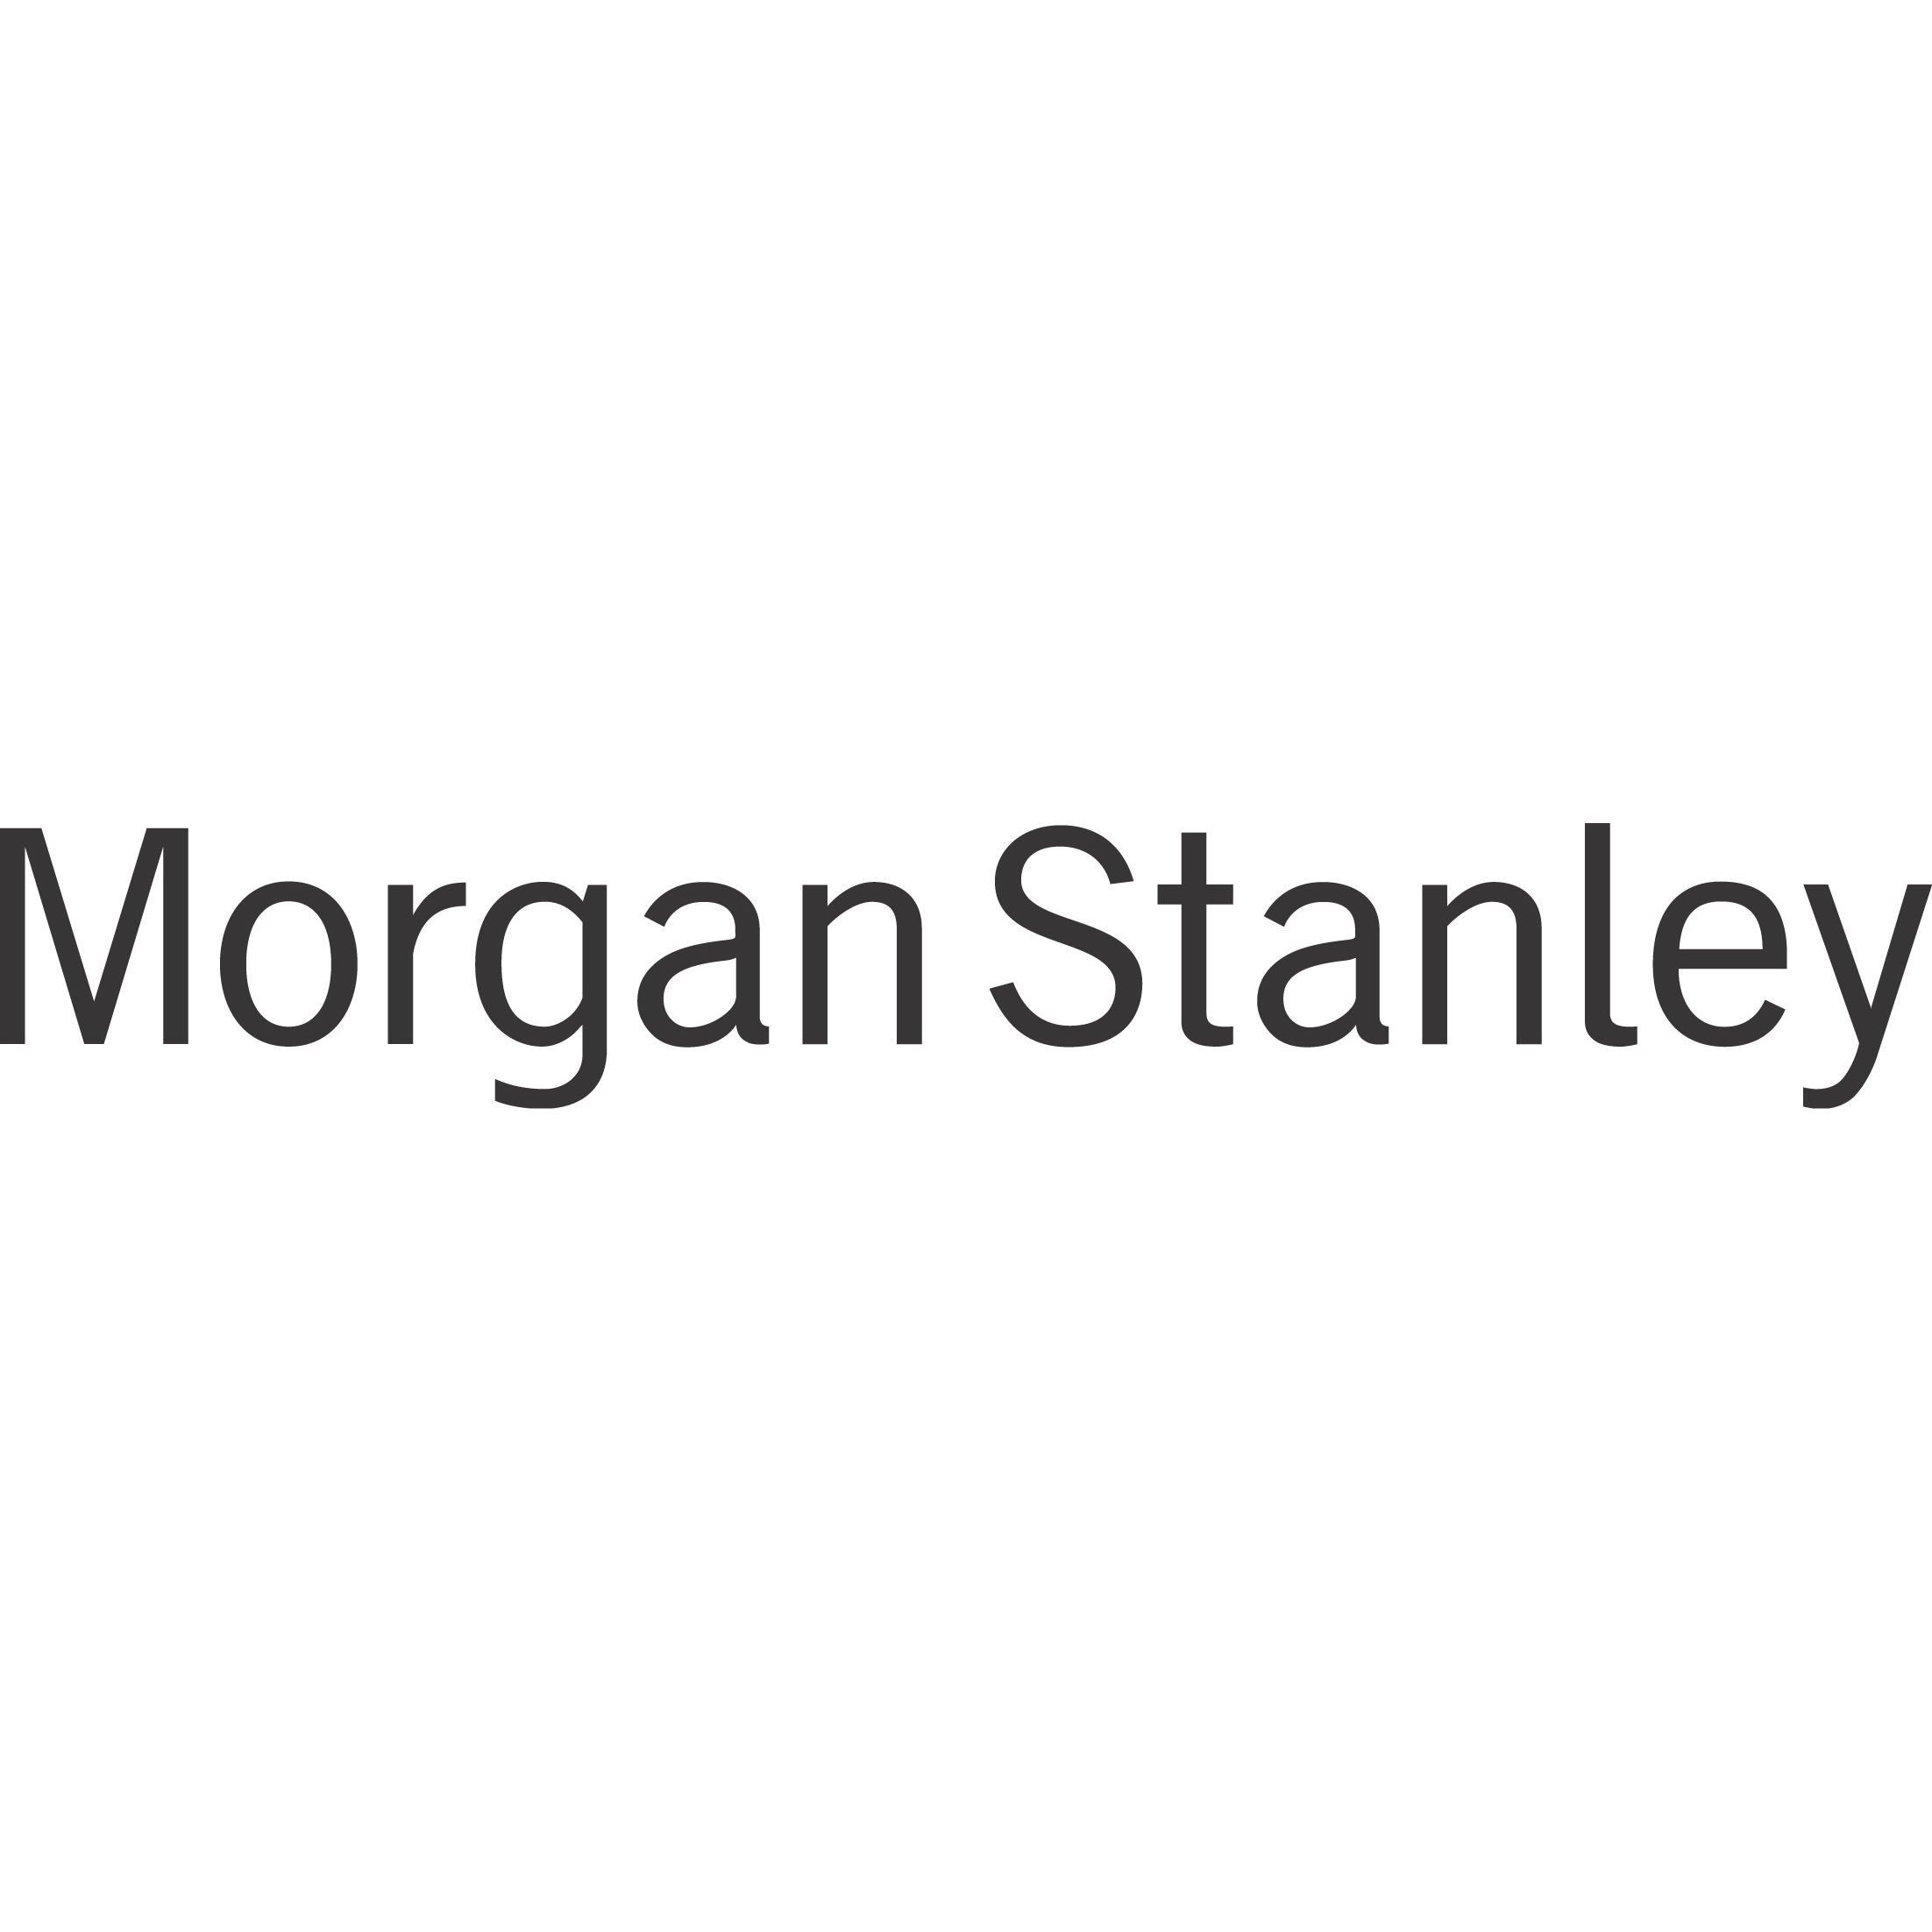 William A Bridell - Morgan Stanley | Financial Advisor in Birmingham,Alabama